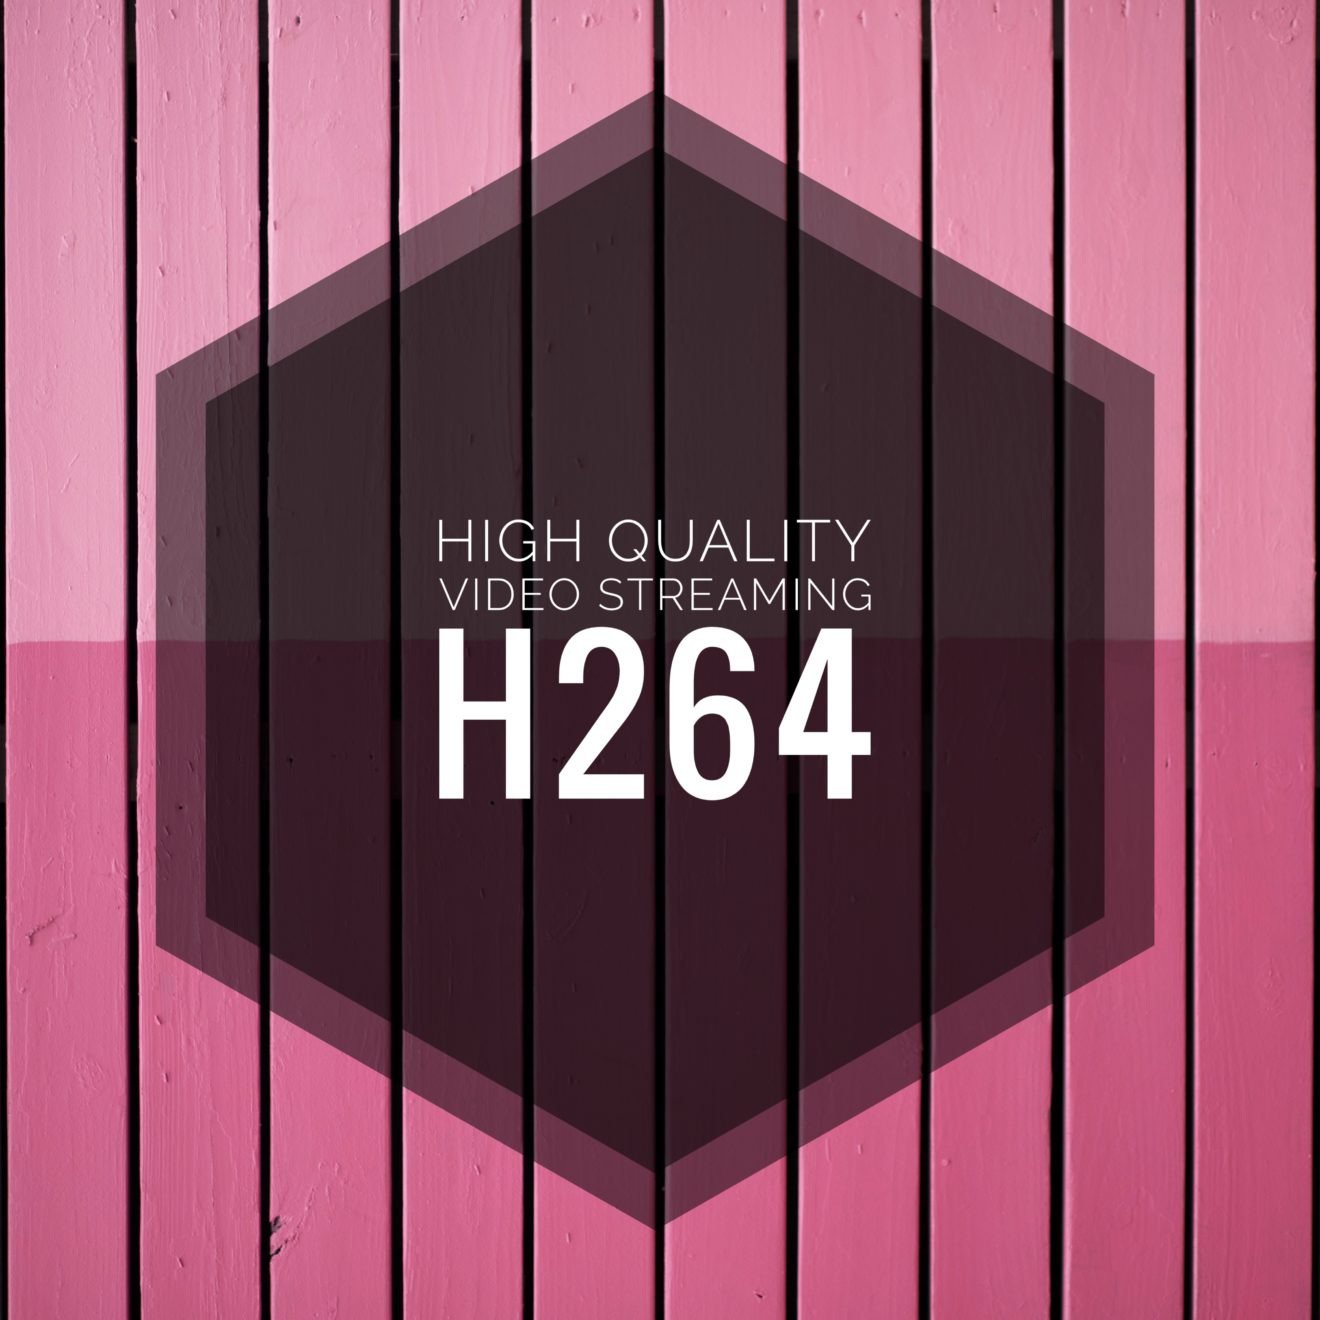 h264 high quality streaming